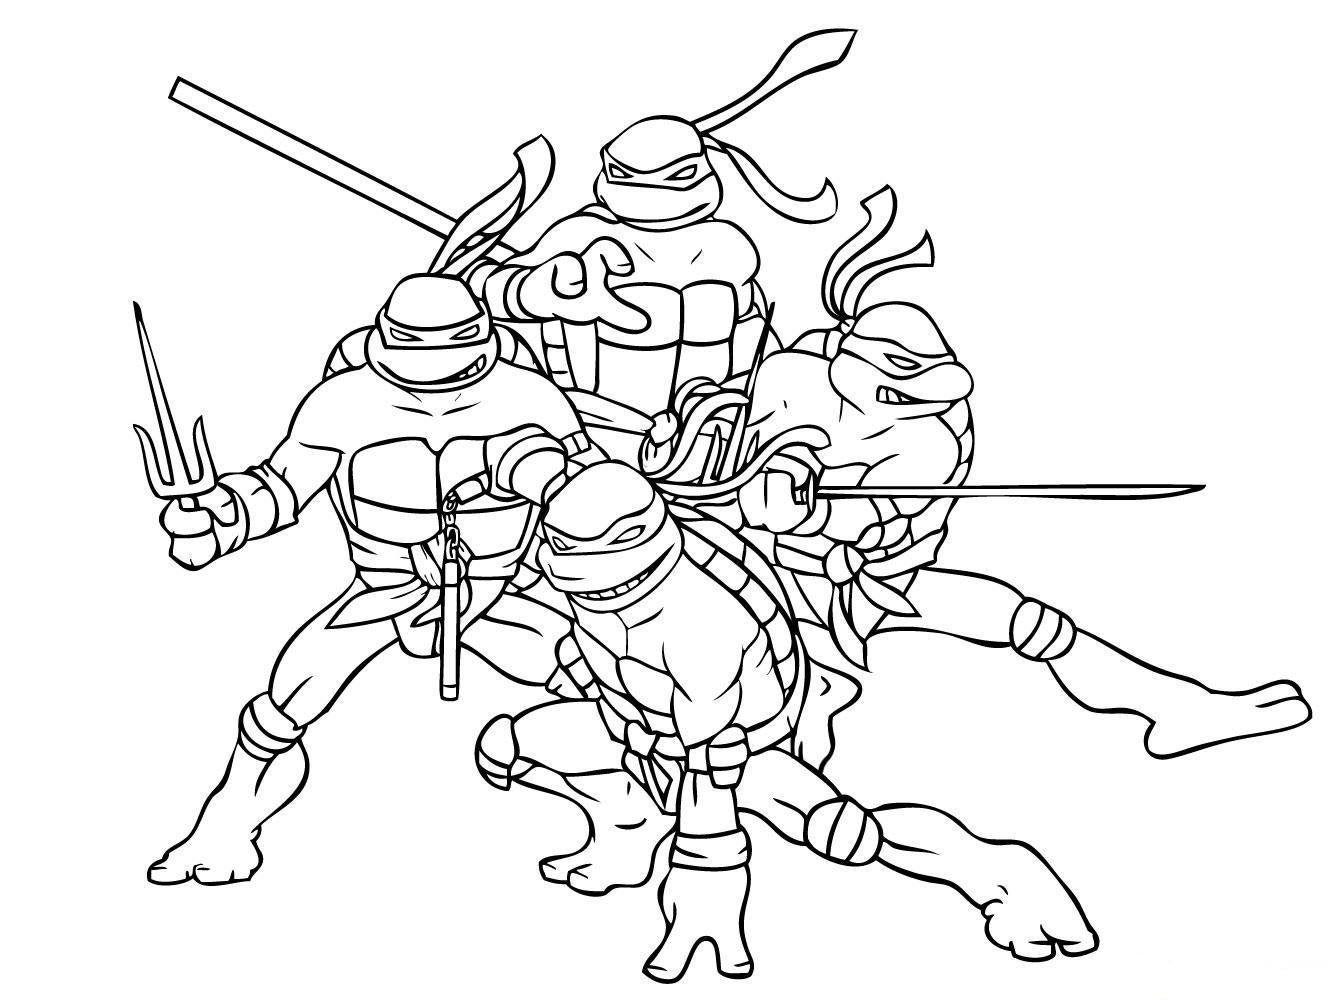 Download And Print Superhero Coloring Page Ninja Turtle